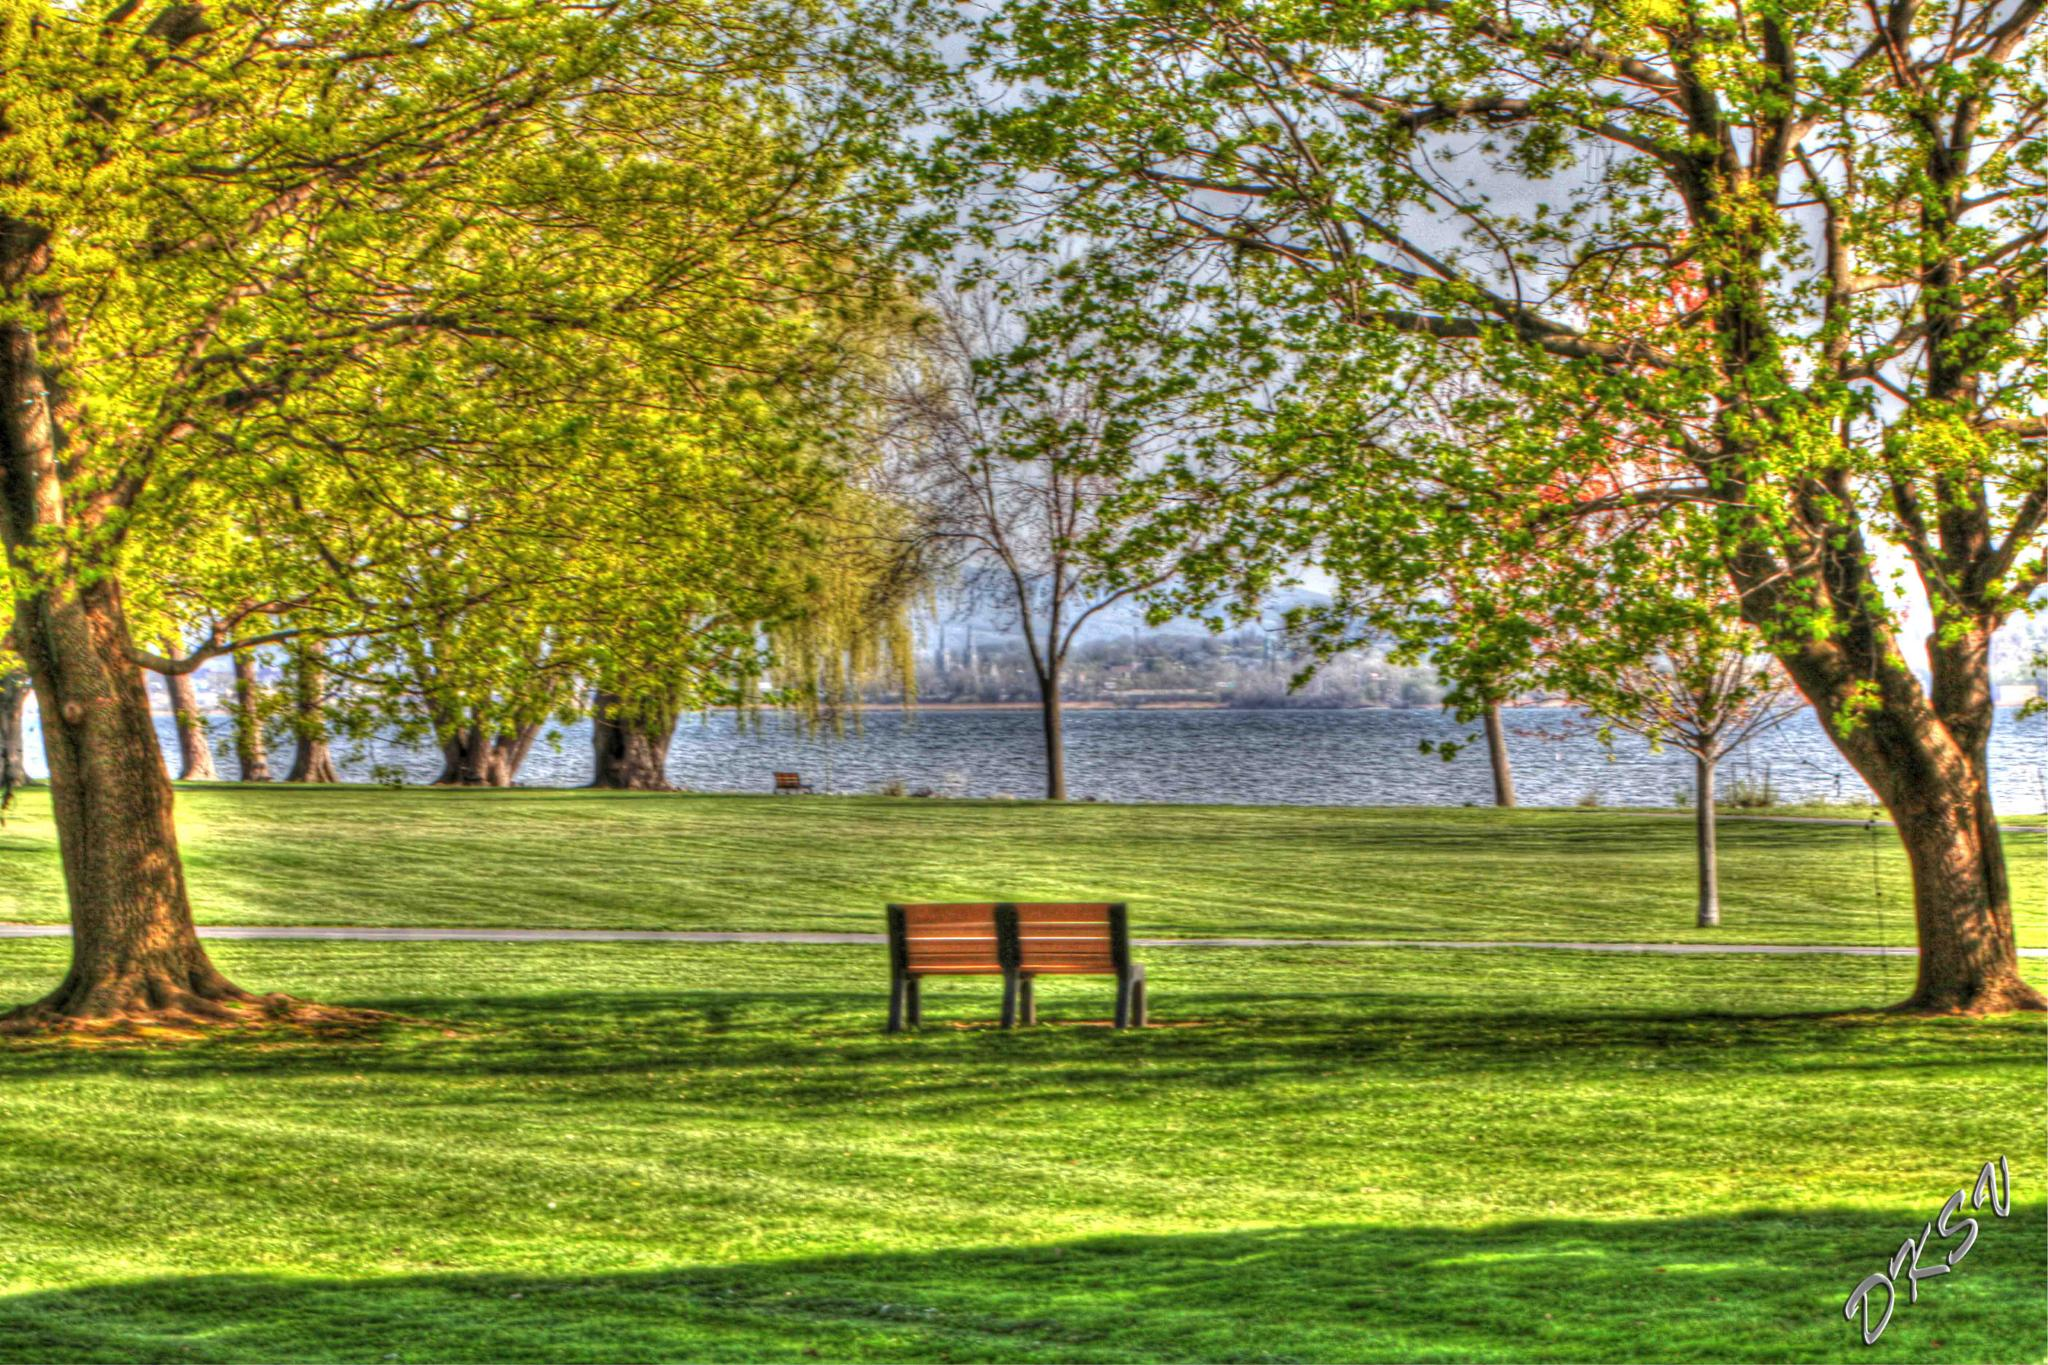 The Bench 2 by William Bulger